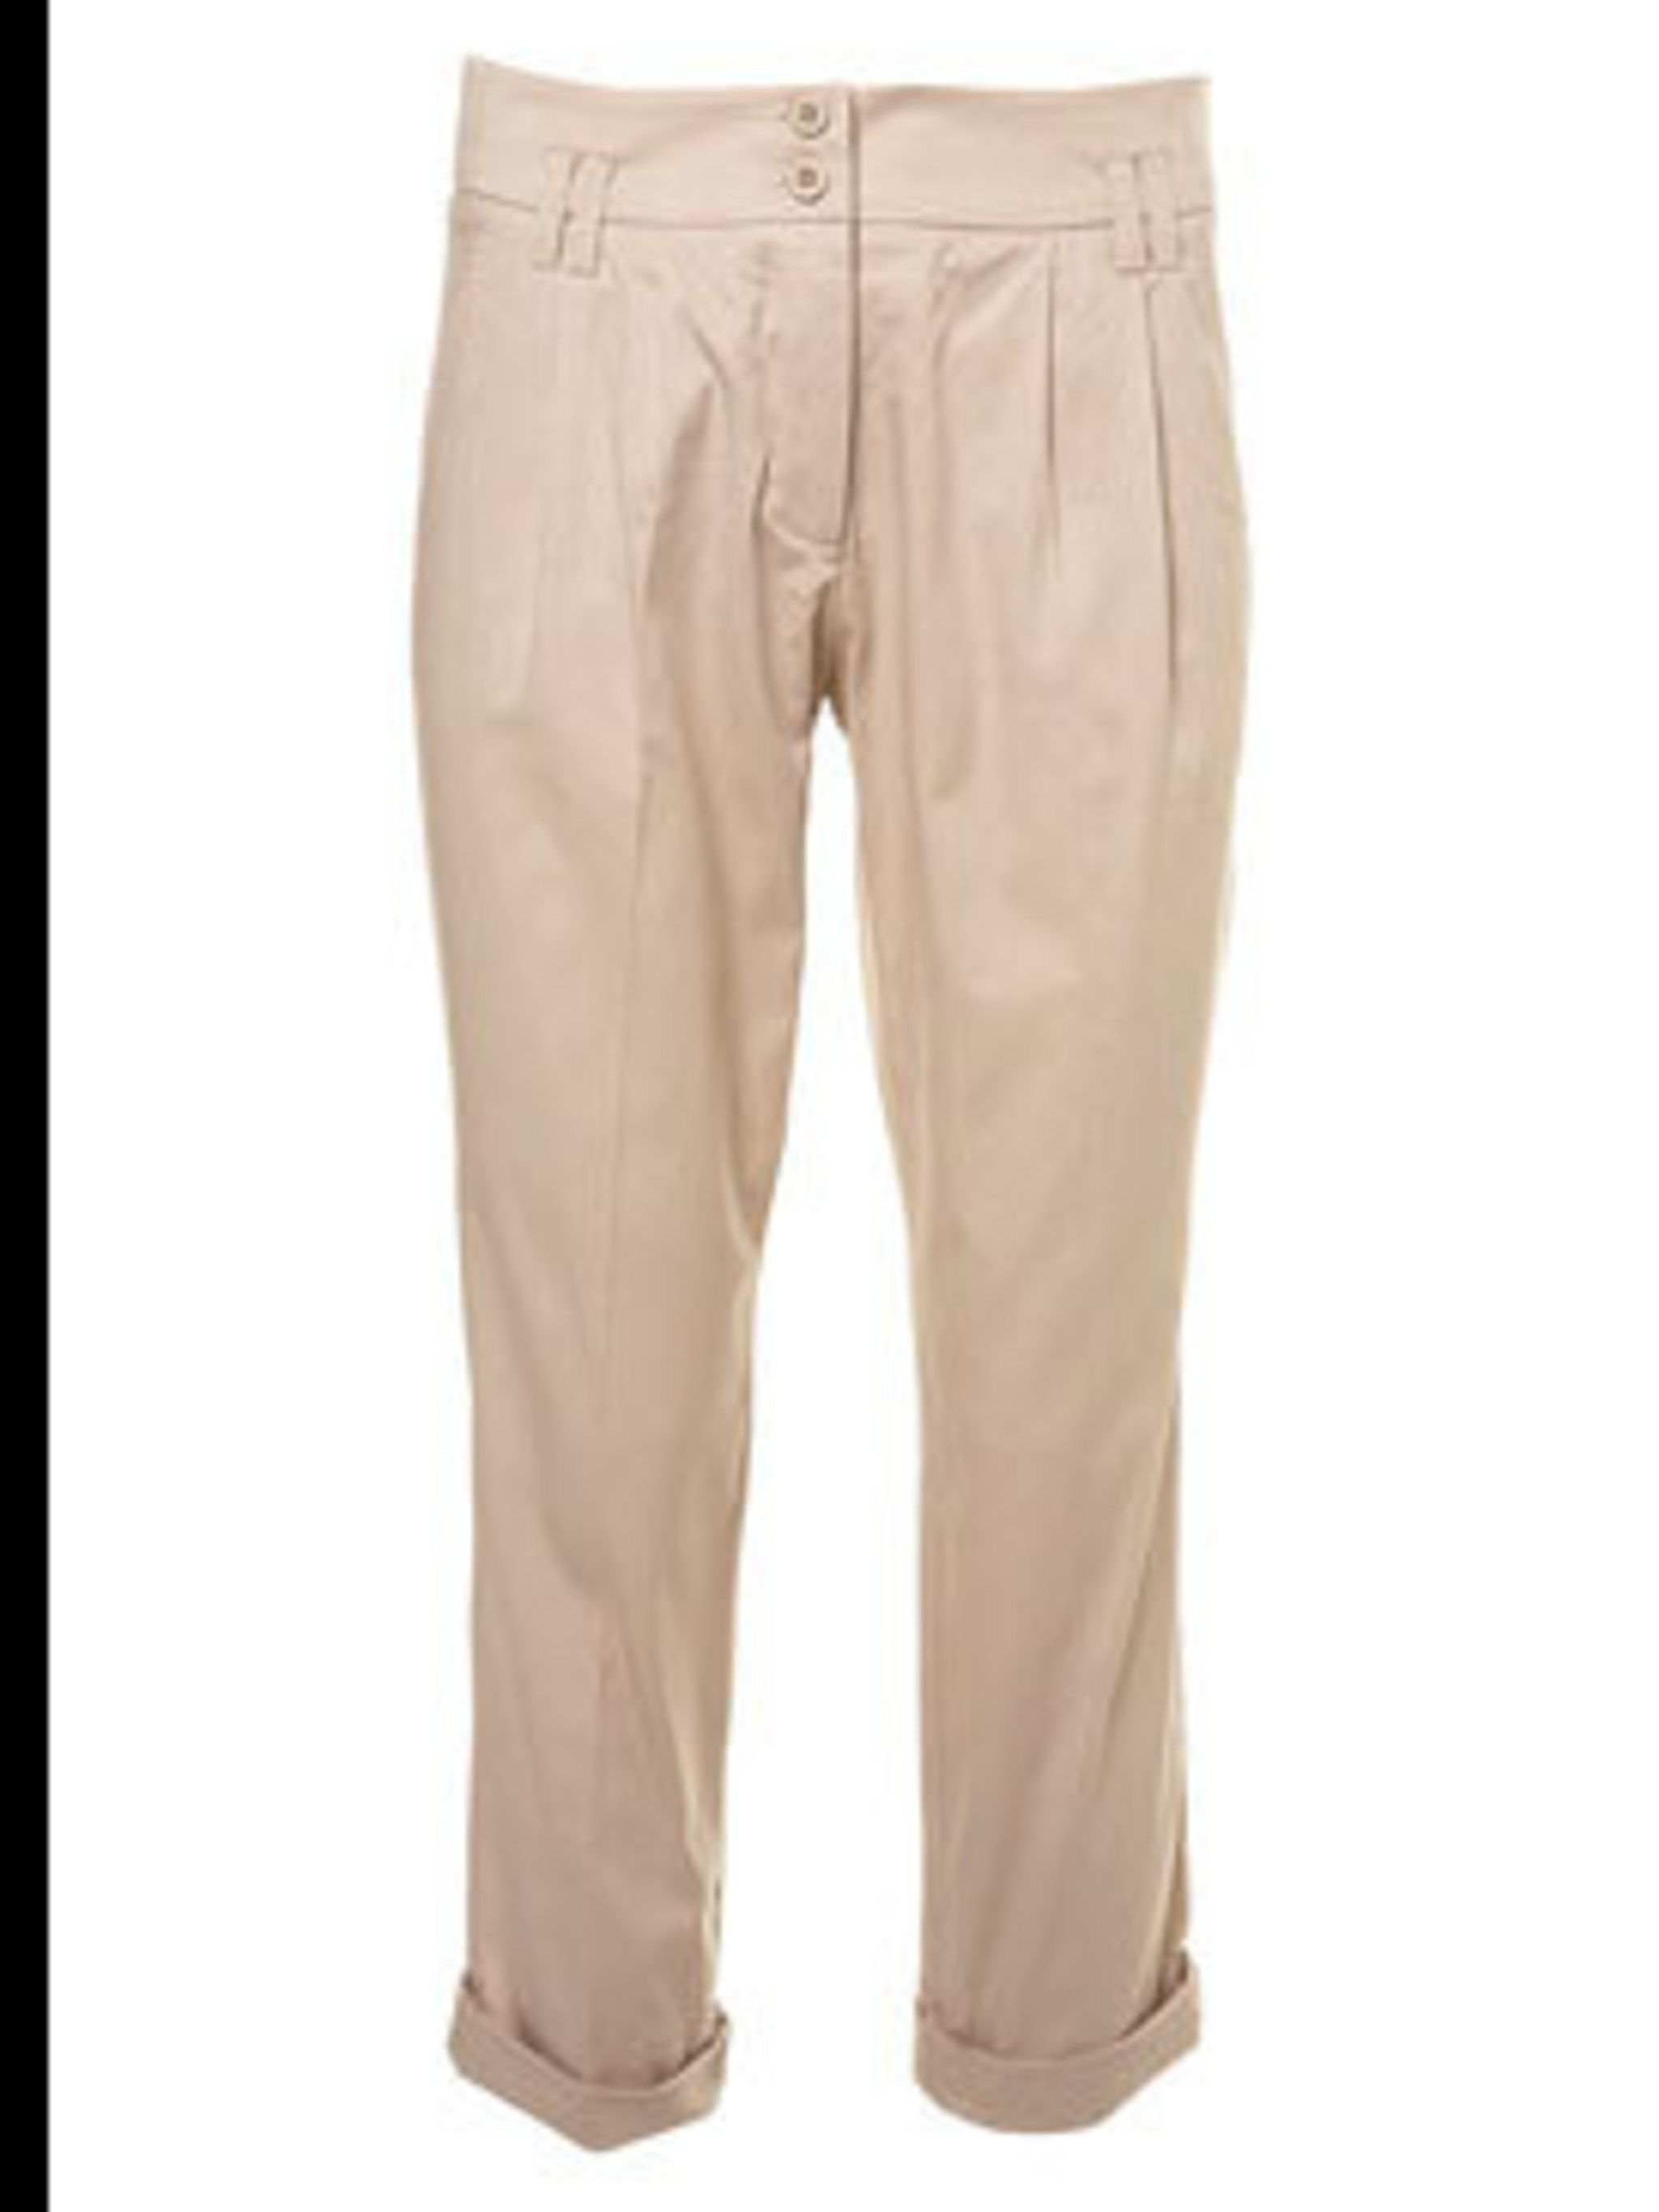 "<p>Peg leg trousers, £30, by <a href=""http://www.topshop.com/webapp/wcs/stores/servlet/ProductDisplay?beginIndex=0&viewAllFlag=&catalogId=19551&storeId=12556&categoryId=155556&parent_category_rn=74433&productId=1232324&langId=-"